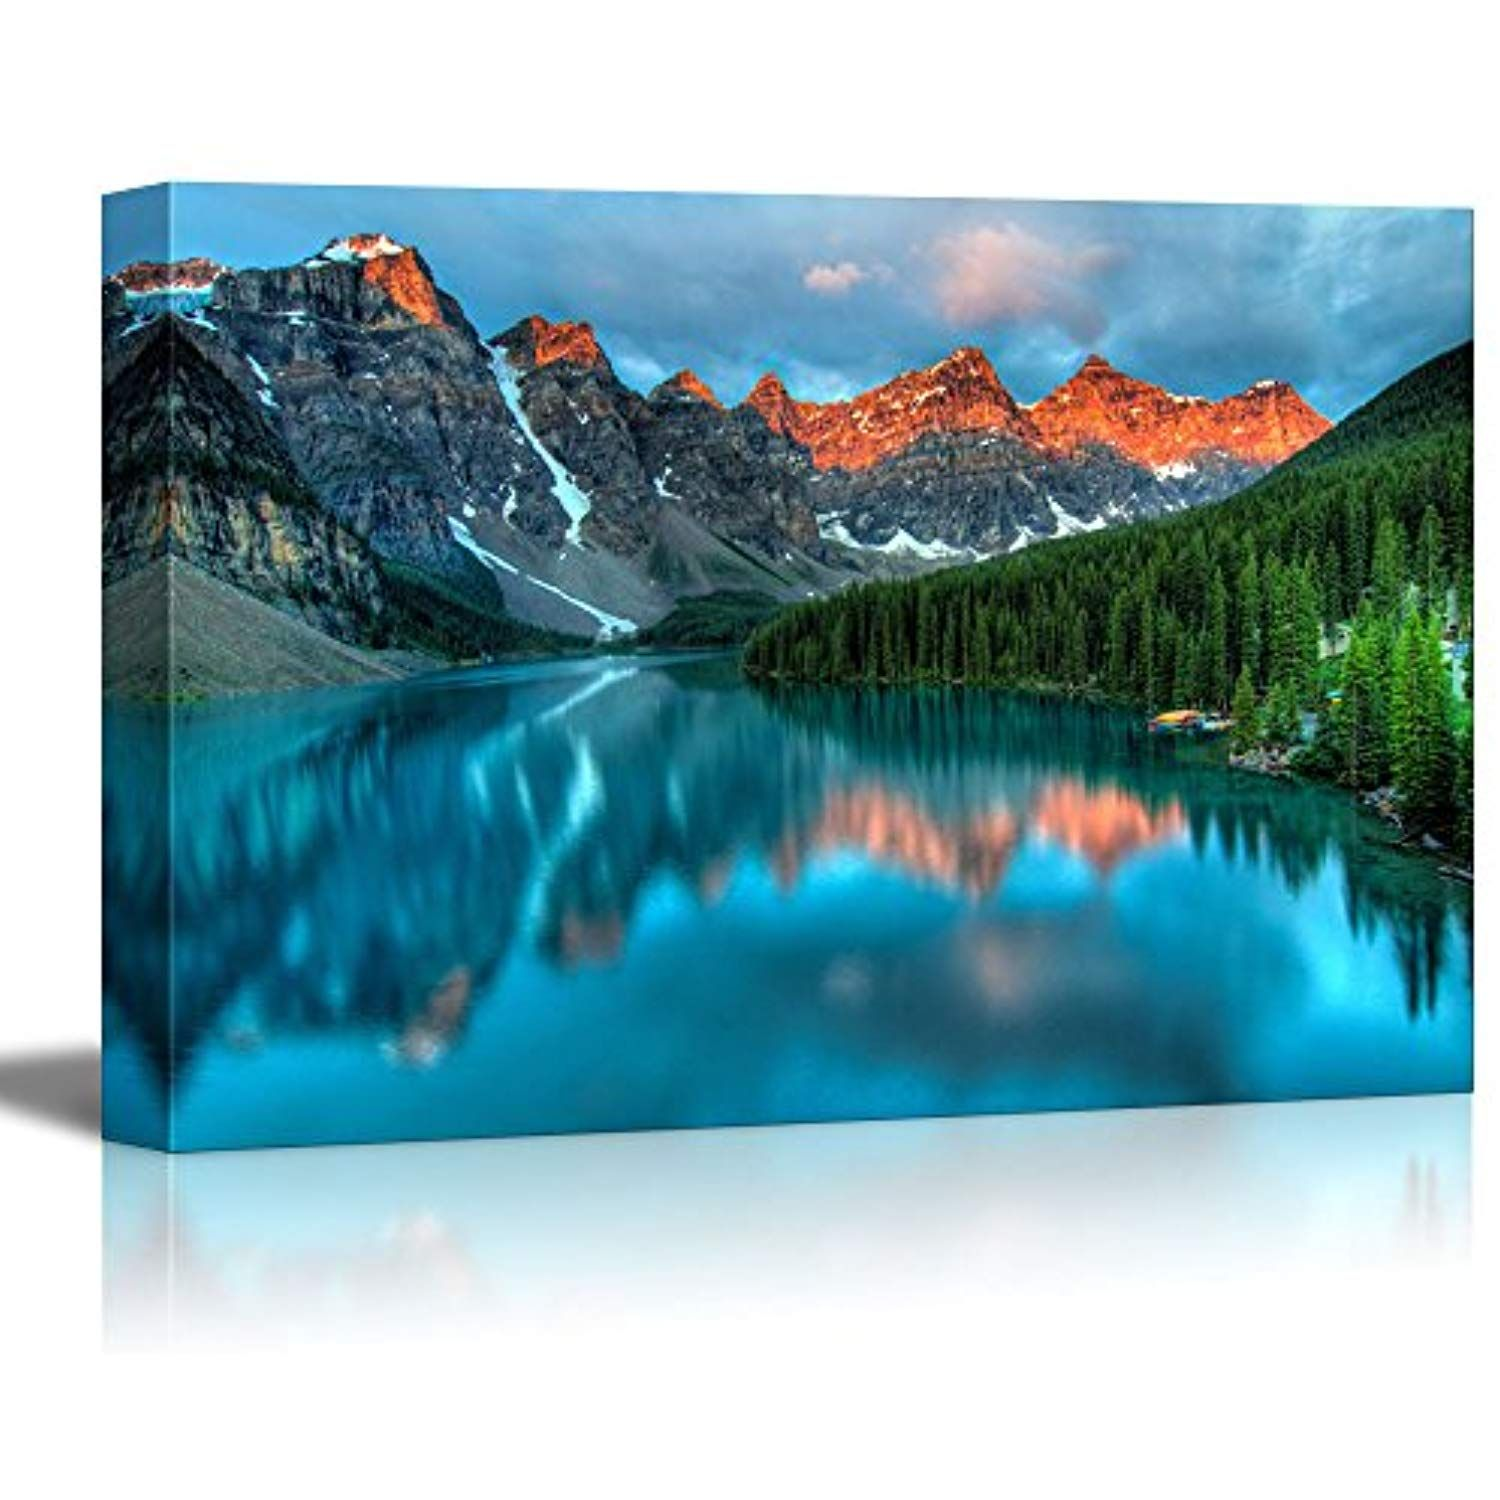 Alberta Canada Moraine Lake 9x12 Art Print, Wall Decor Travel Poster Banff